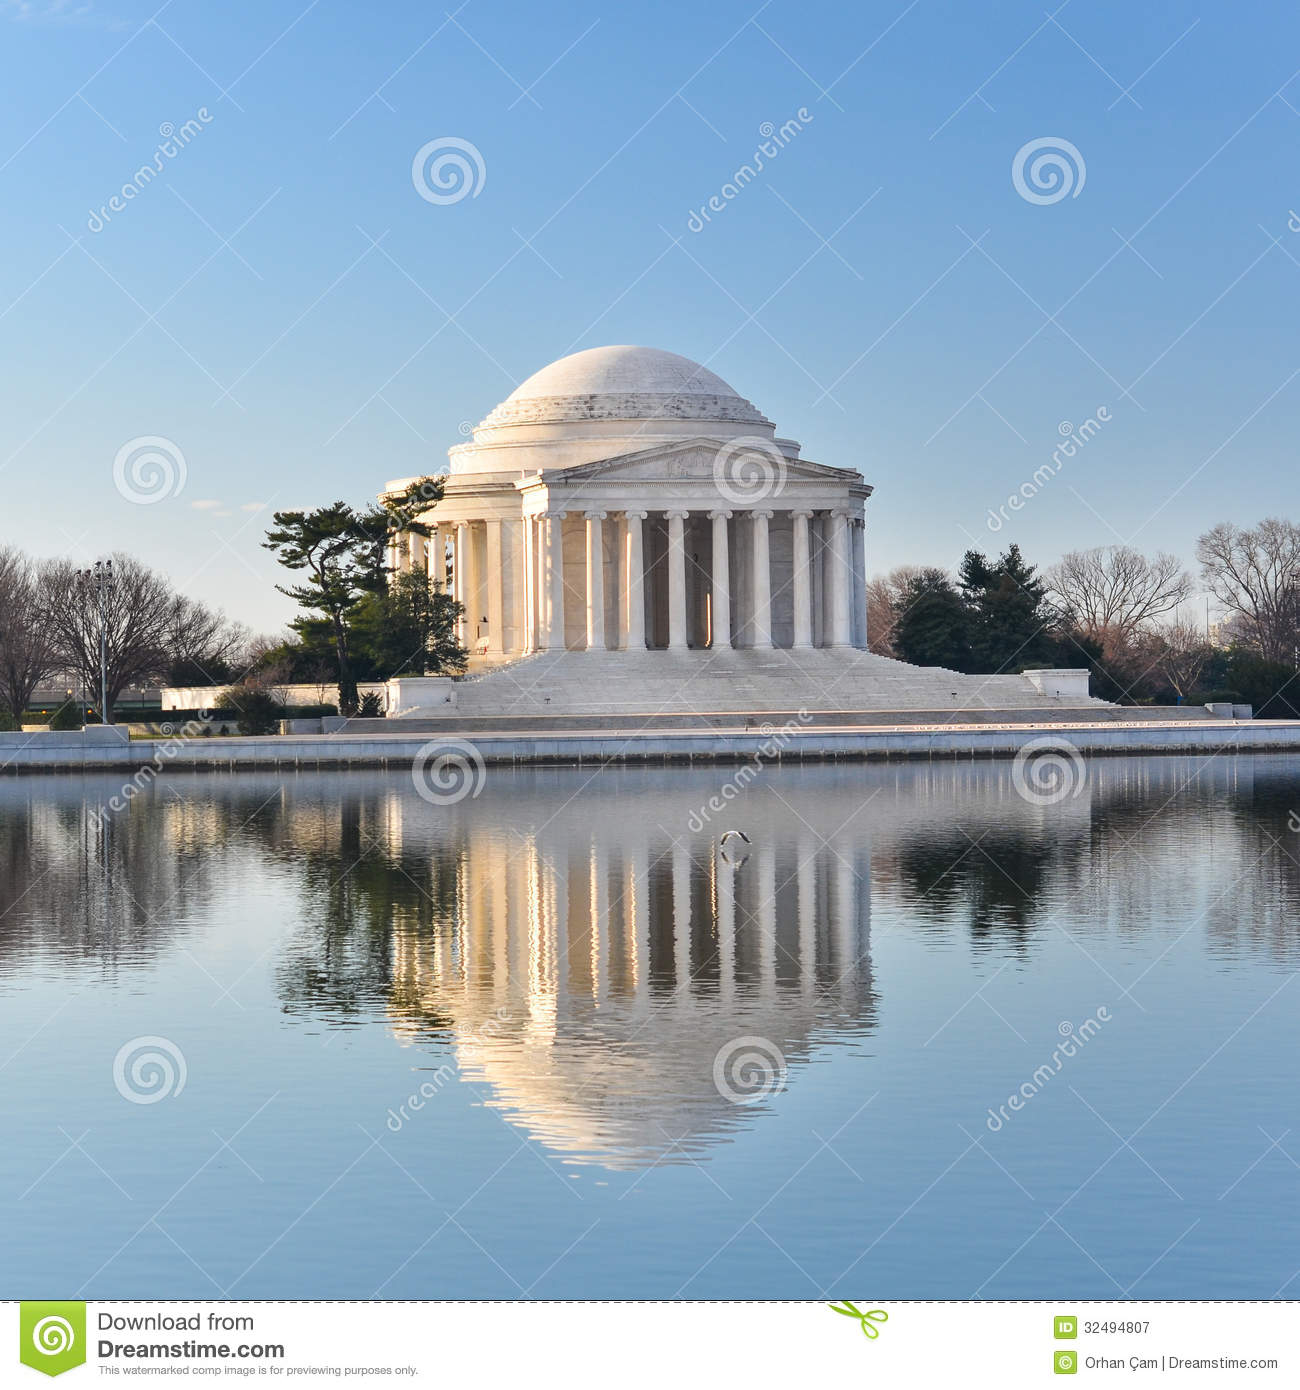 how to get to jefferson memorial